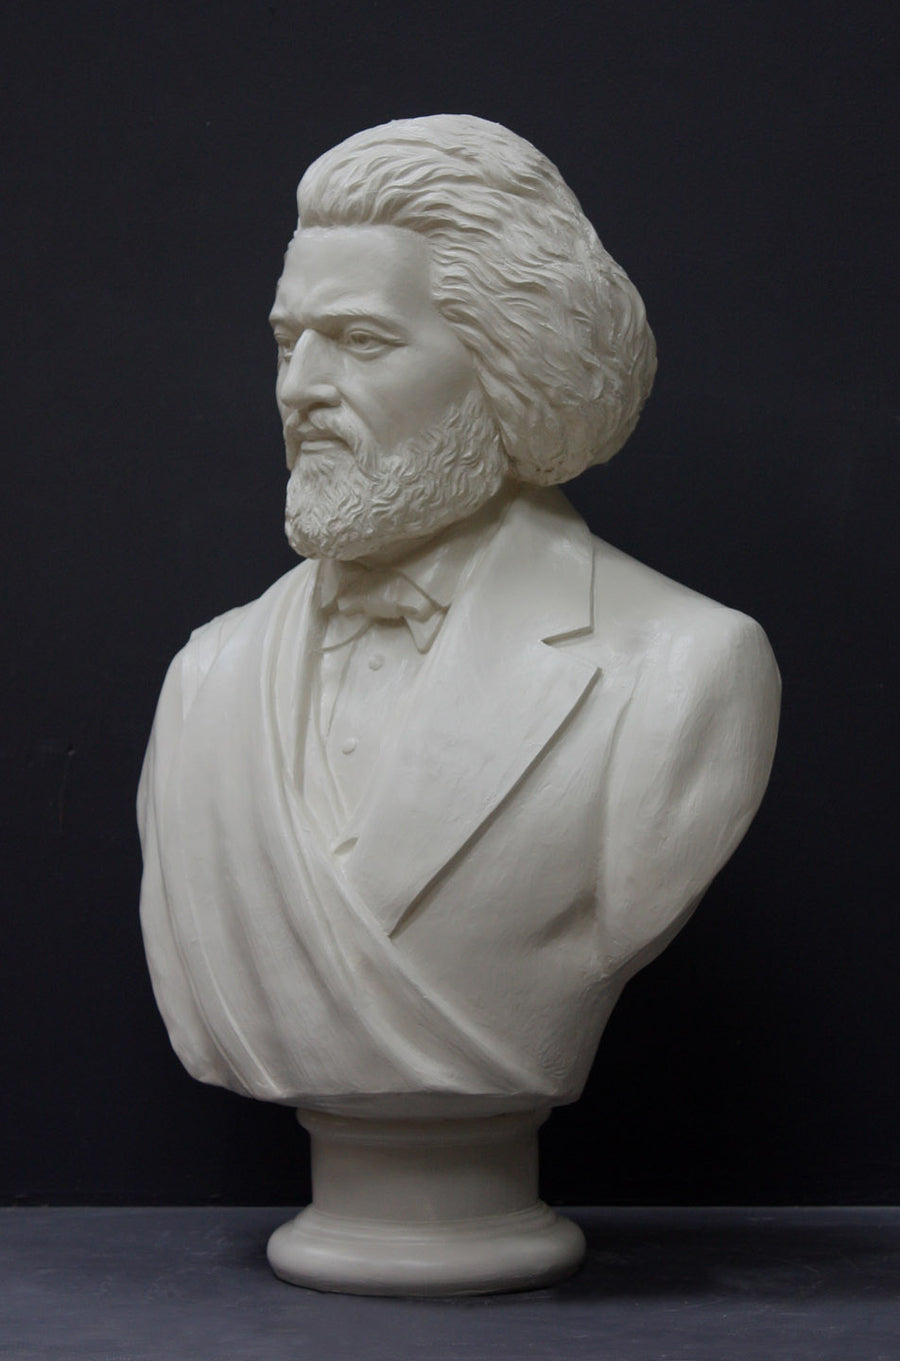 photo of white plaster cast sculpture of bust of Frederick Douglass with beard and in suit coat with toga over one shoulder on dark gray background